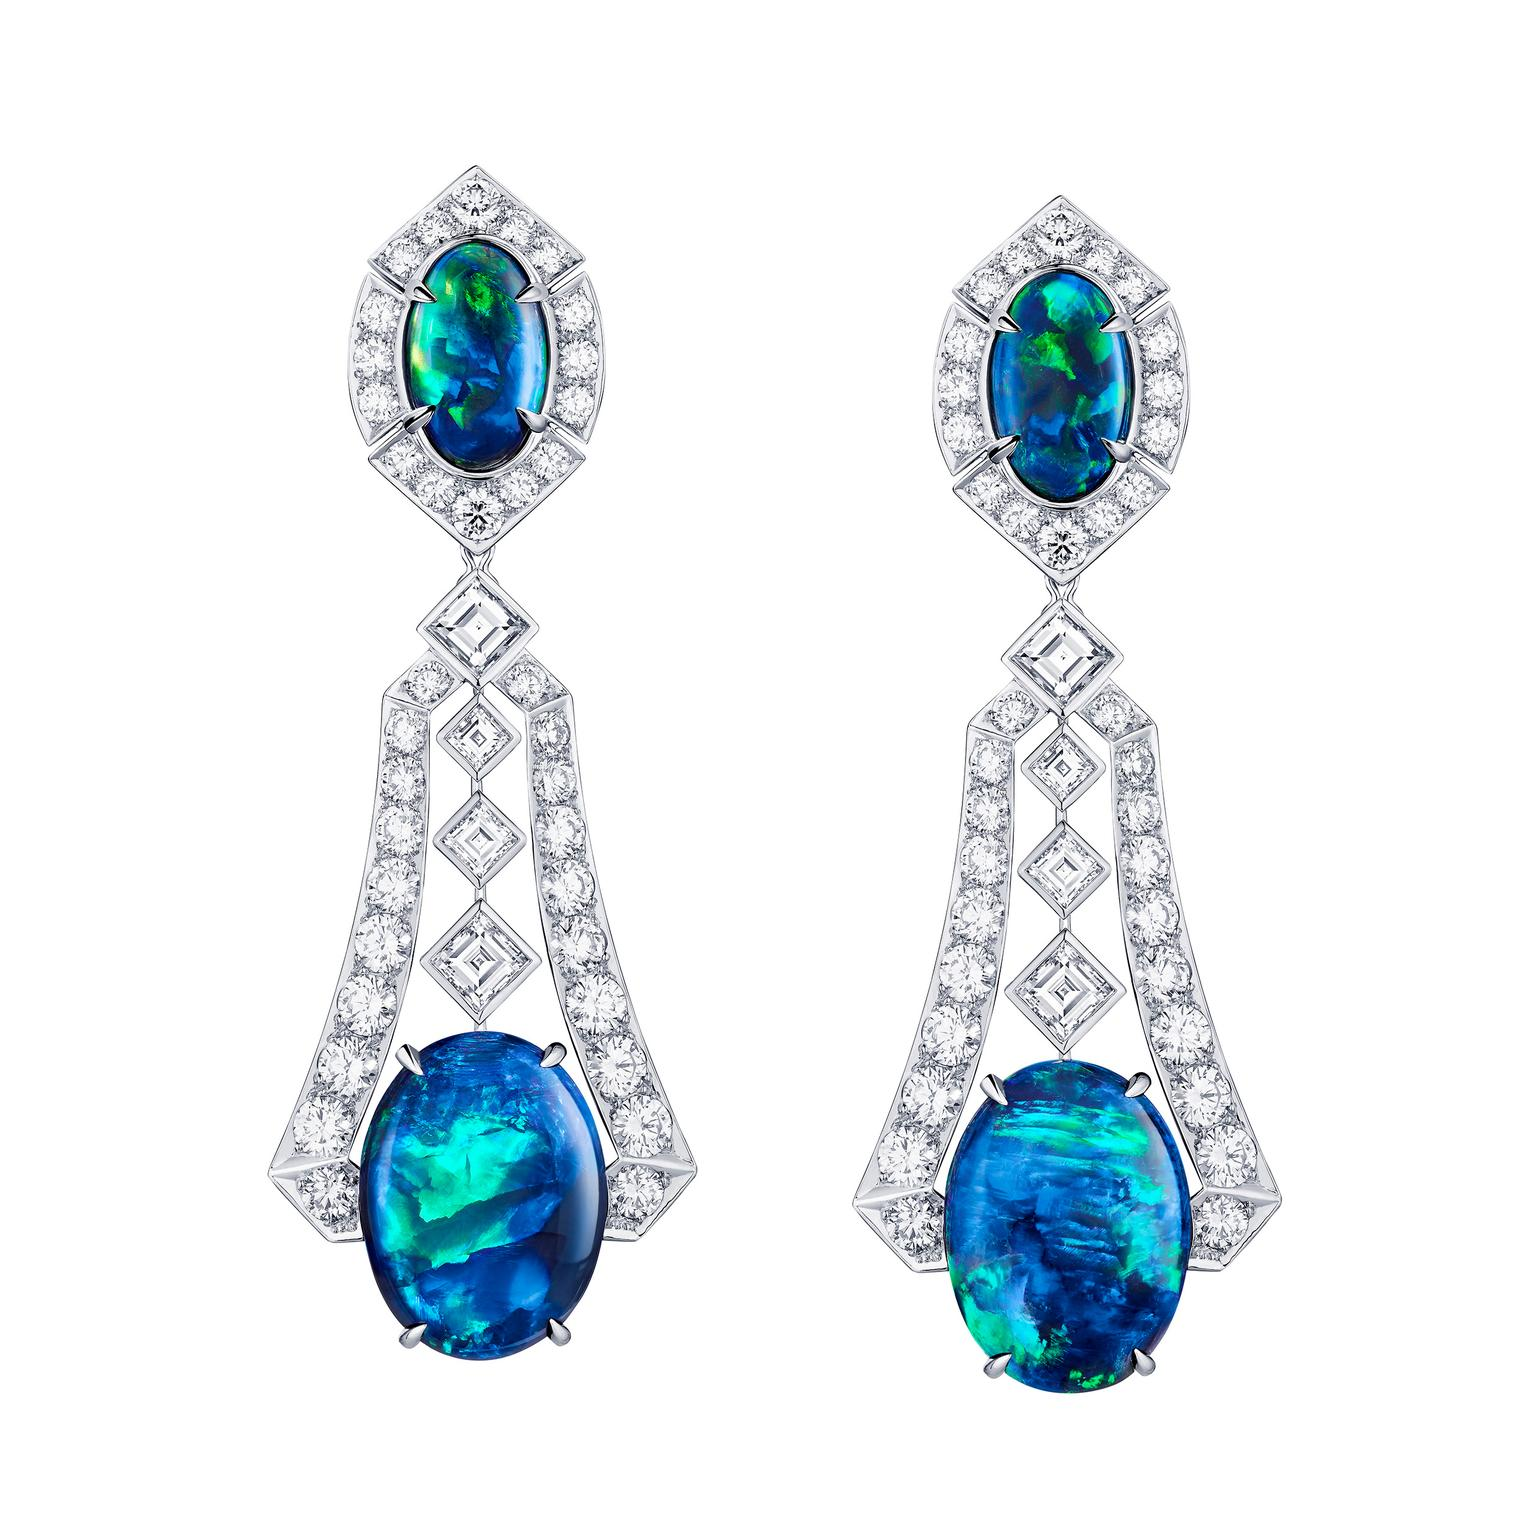 The latest trends in the world of high jewellery 2015